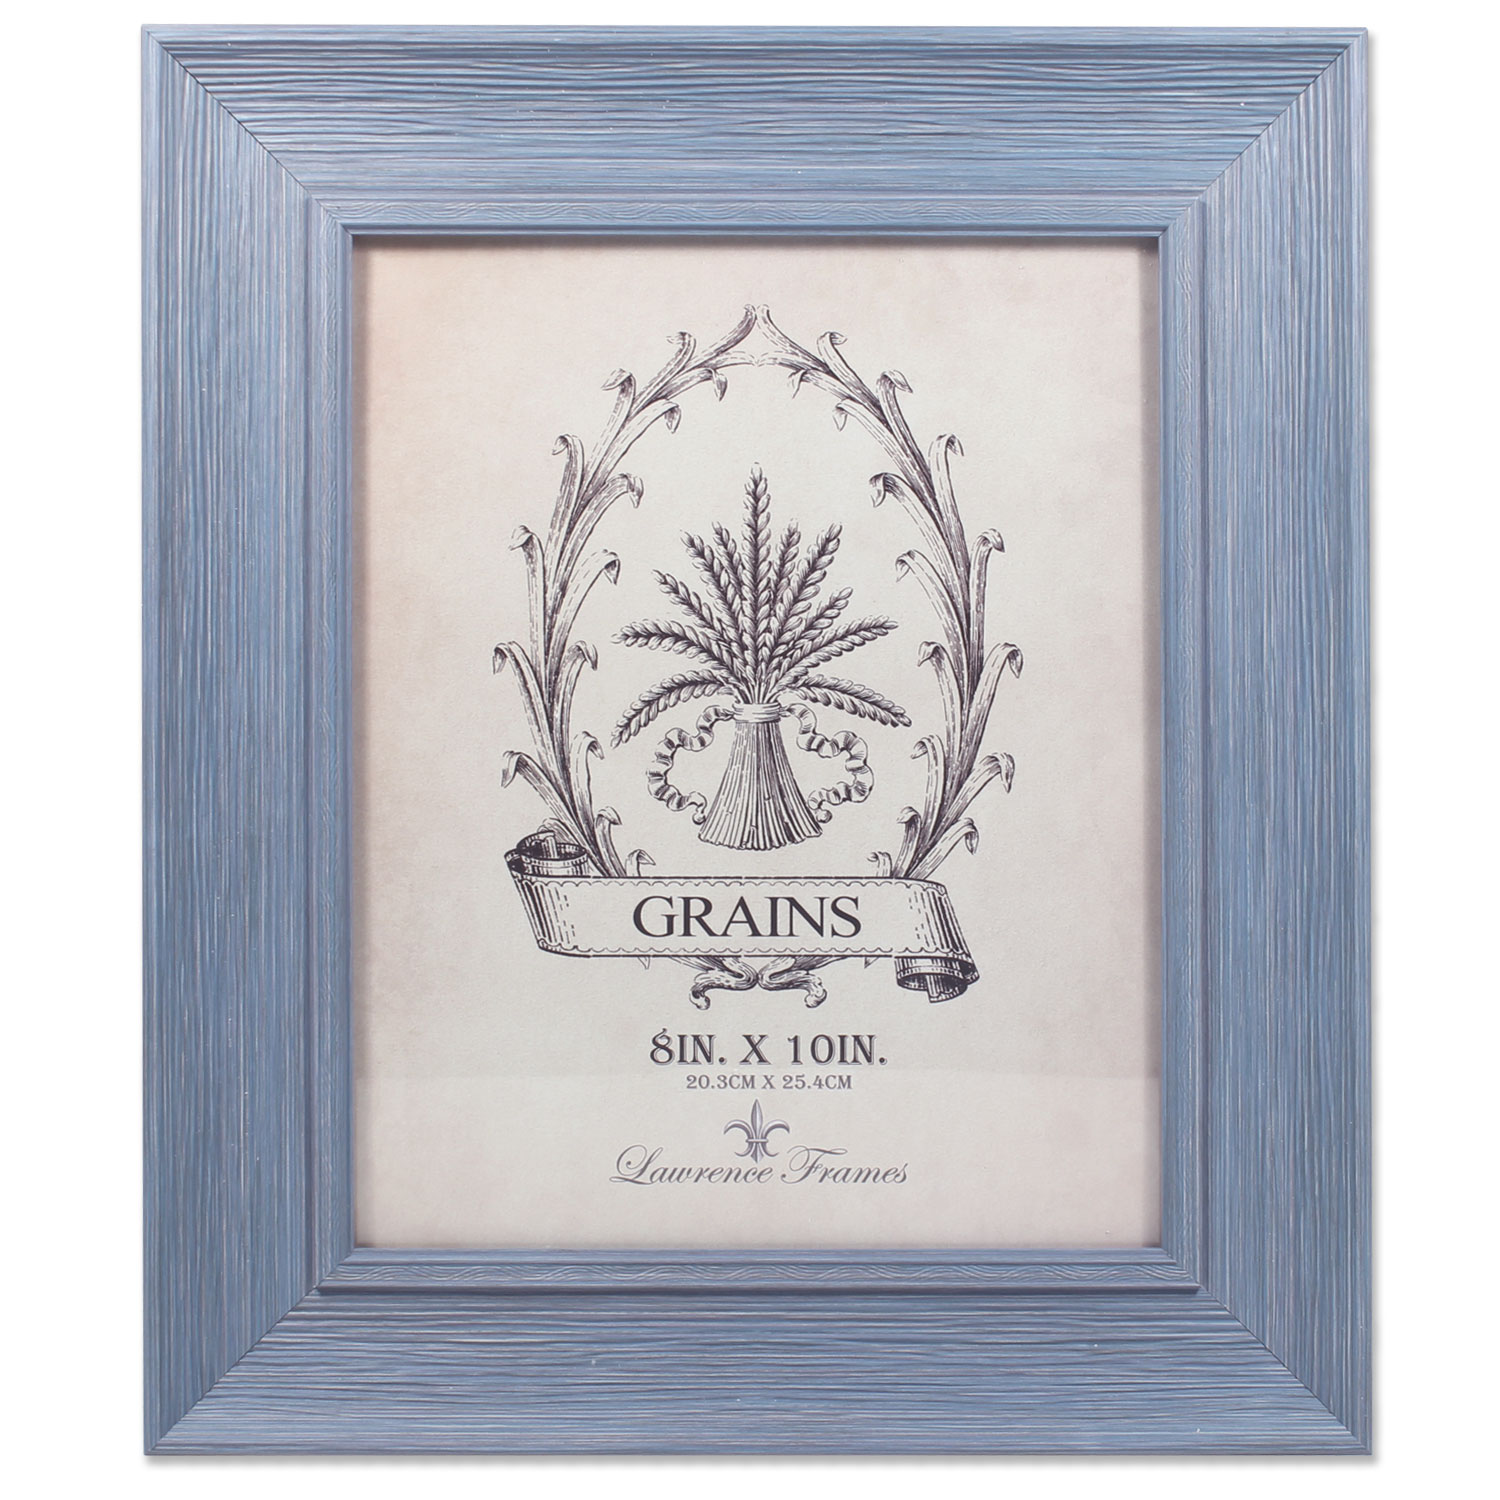 8x10 Weathered Lapis Picture Frame by Lawrence Frames